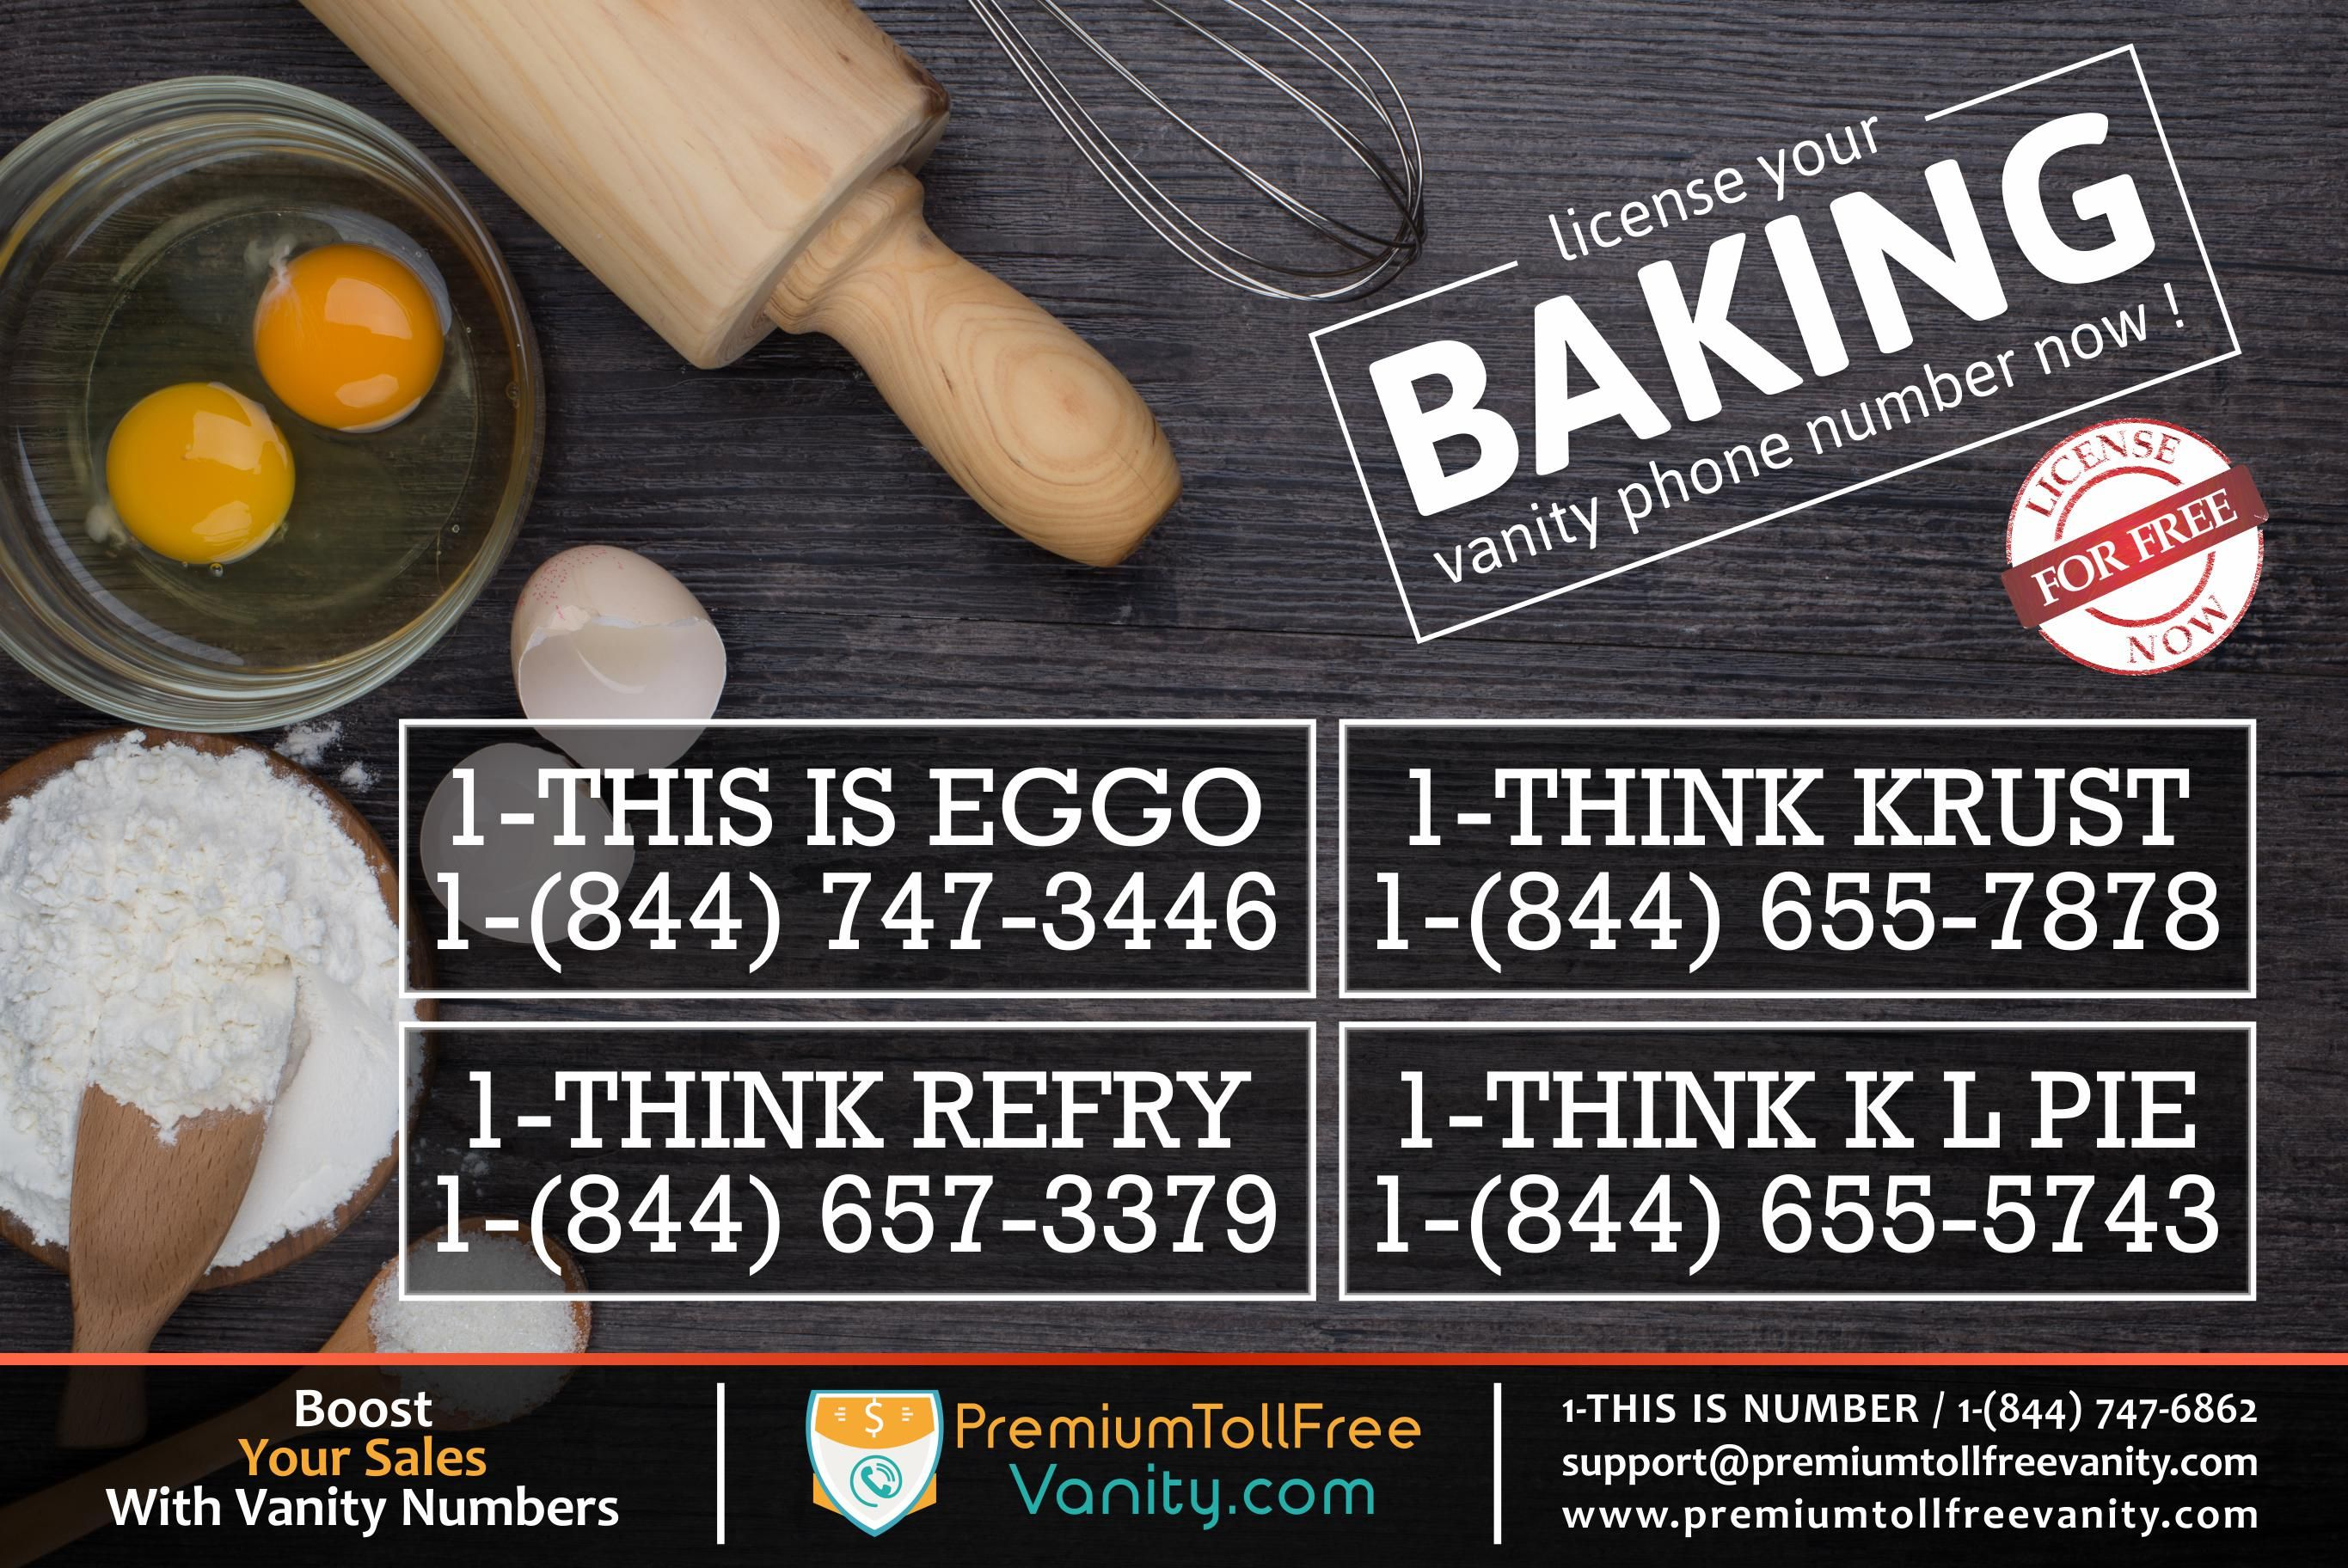 Using A Like IS EGGO, KRUST, For Your Bakery Business Instead Of Your Cell  Number.